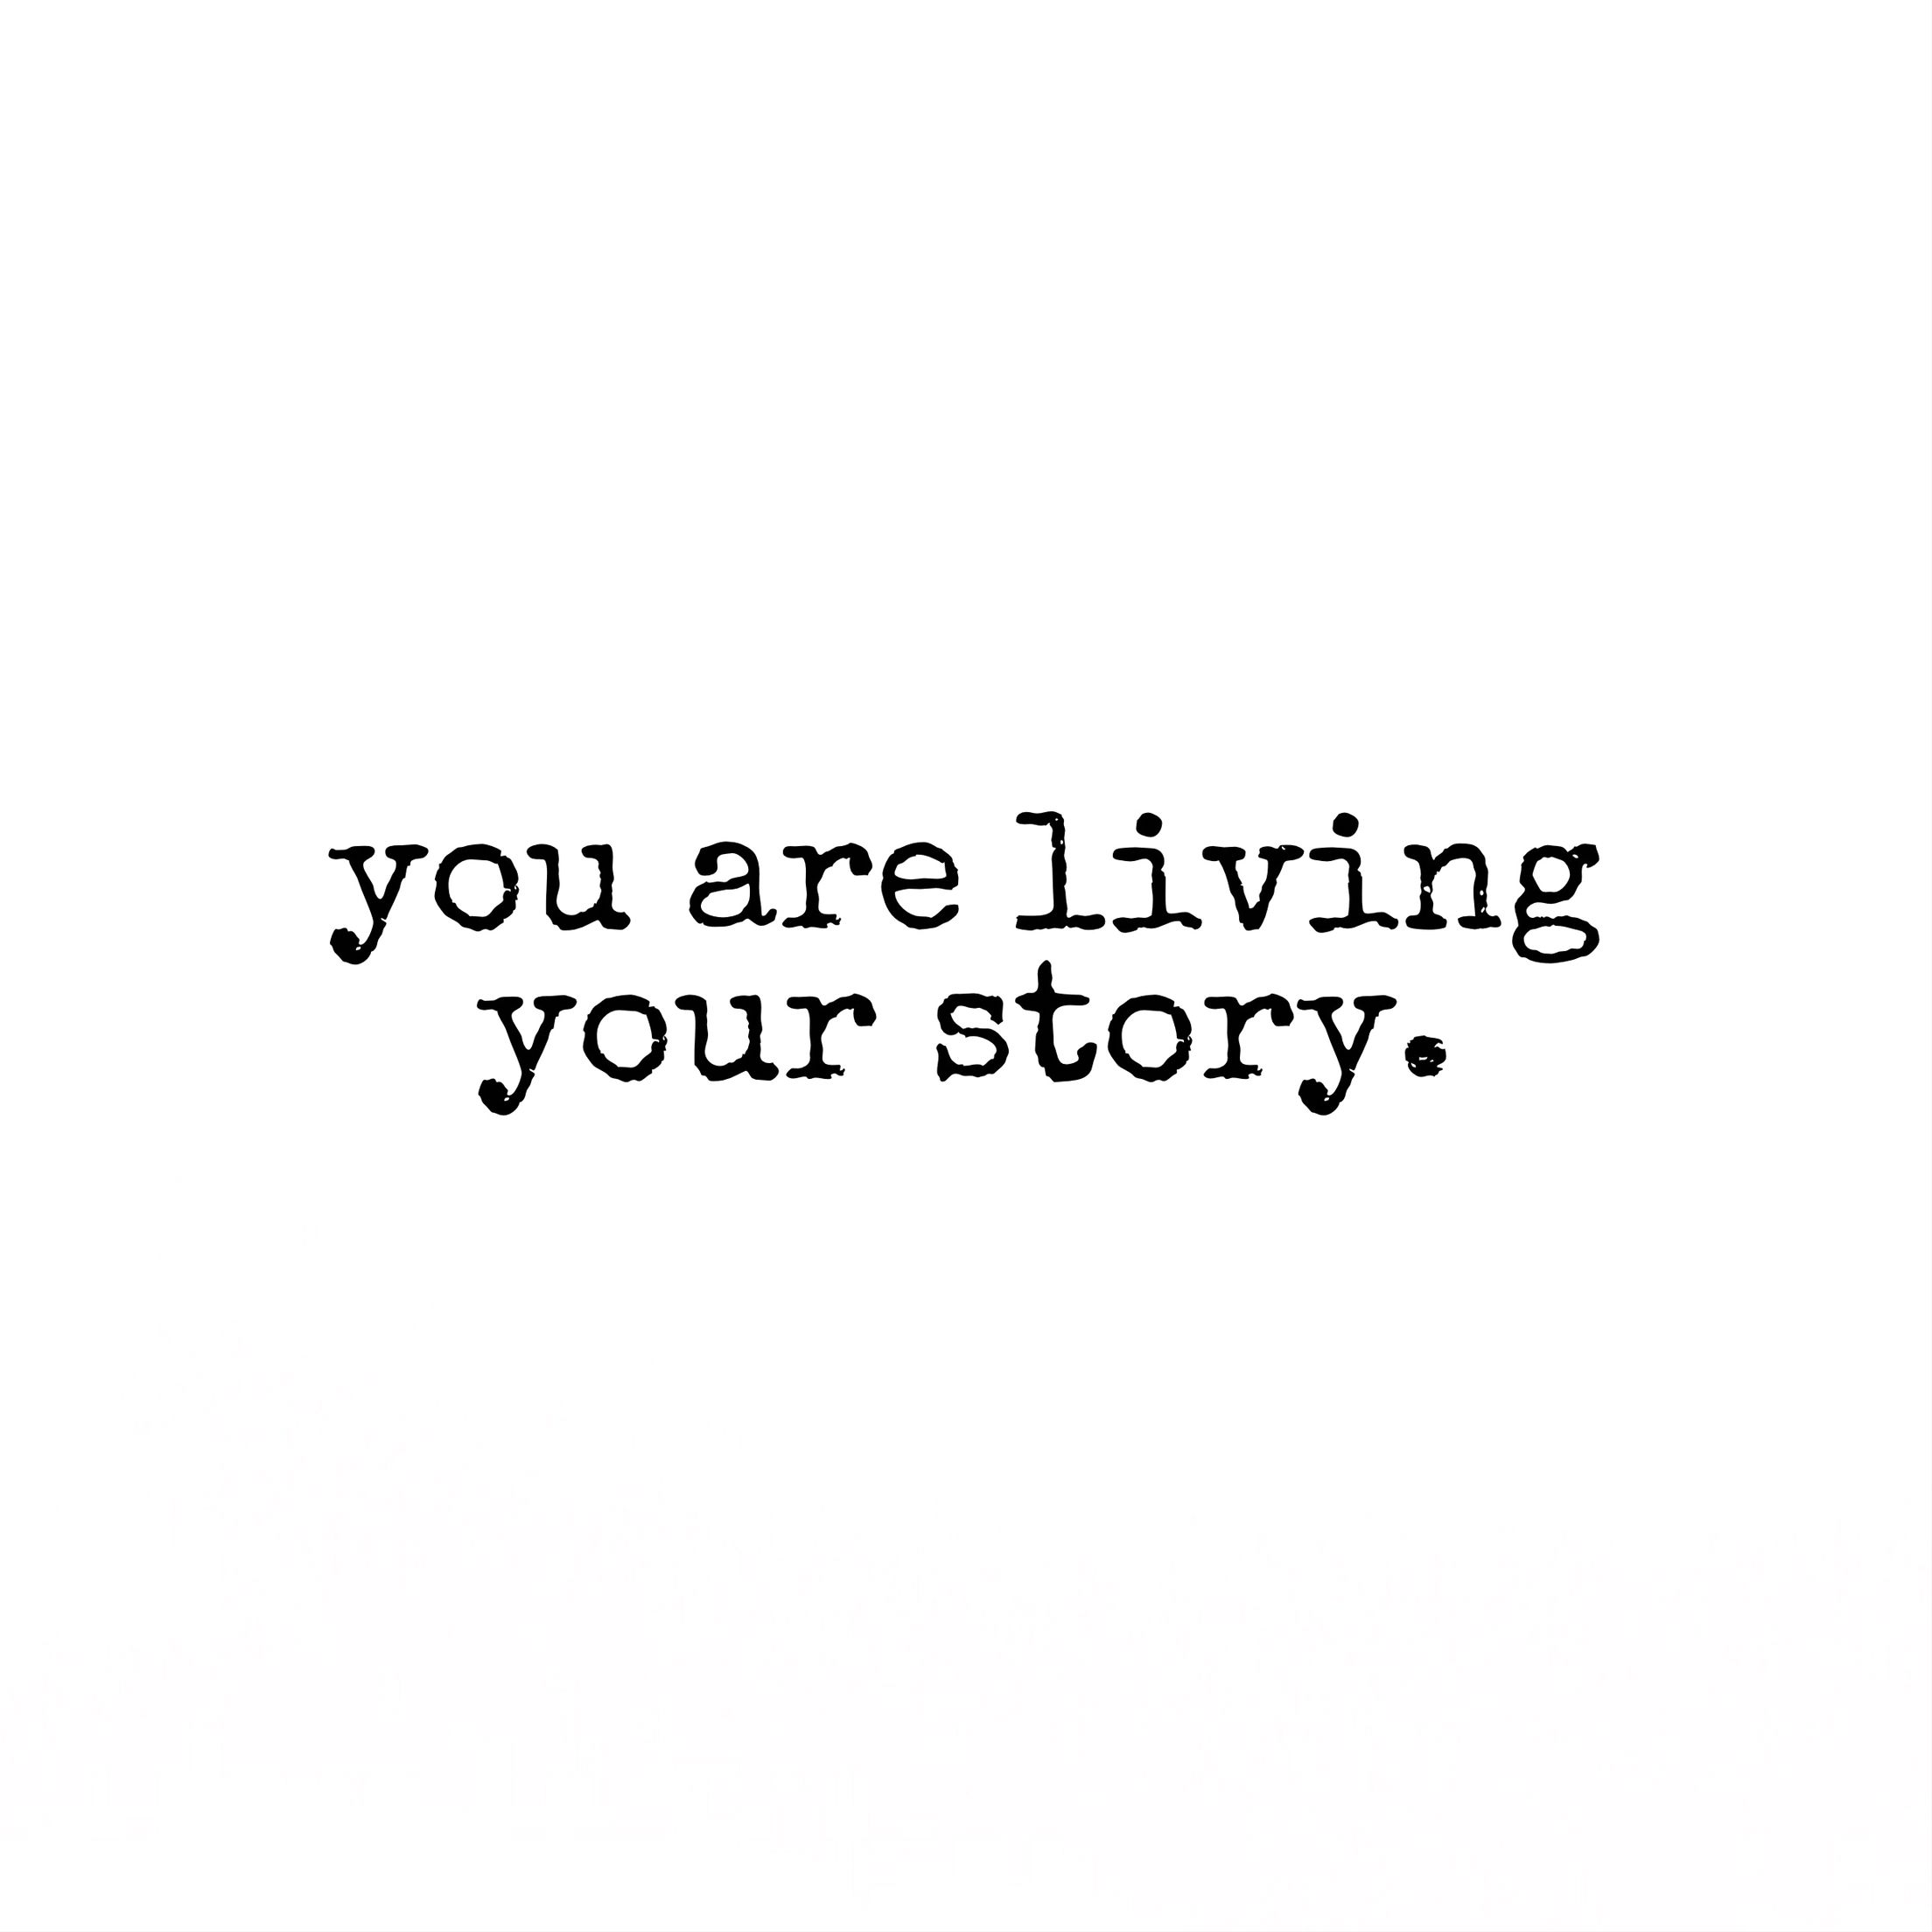 You are living your story Quotes, Live for yourself, Story